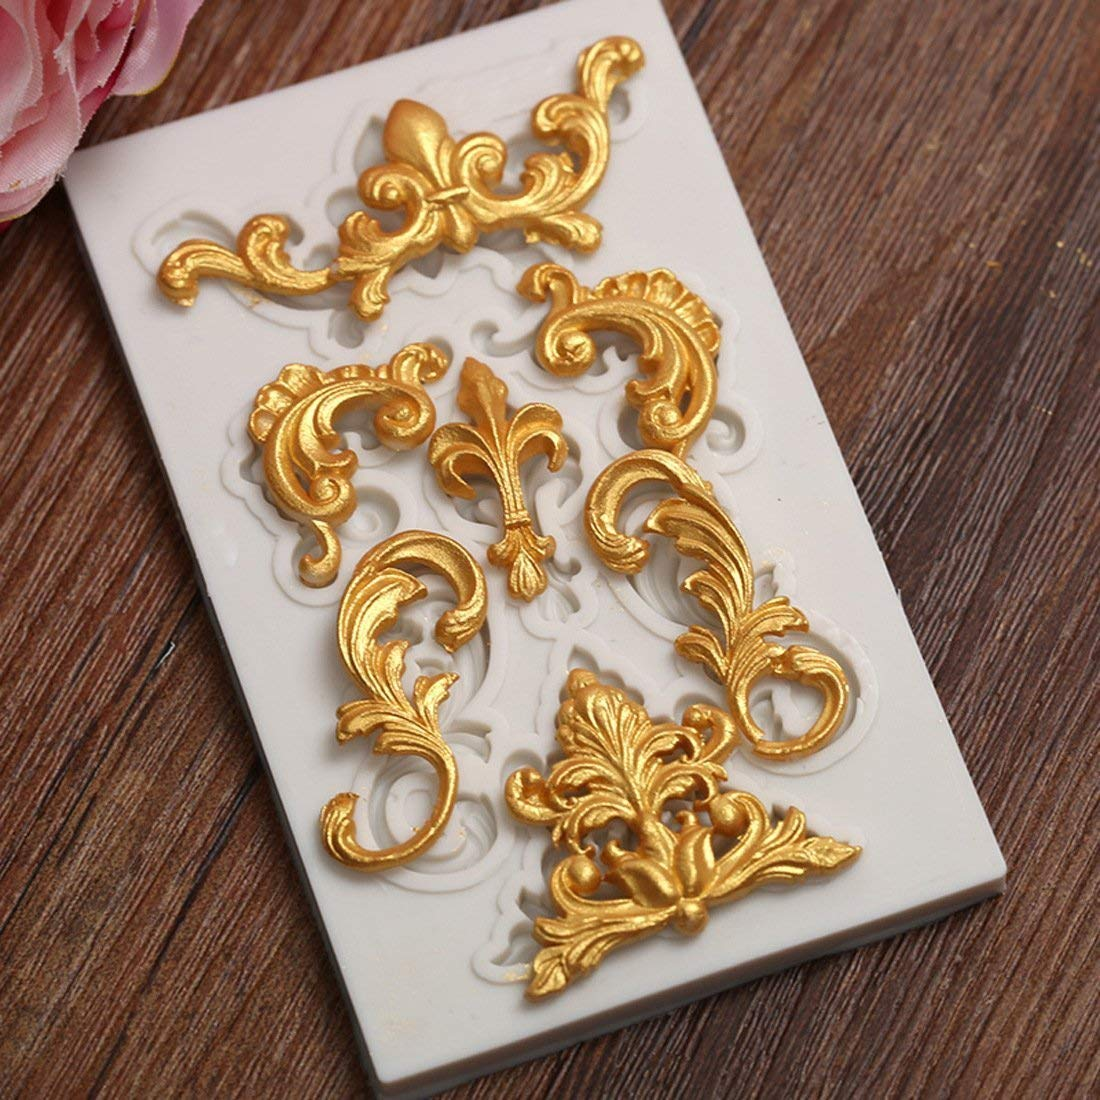 Astra Gourmet 1PC Baroque Style Curlicues Scroll Lace Fondant Silicone Mold for Sugarcraft, Cake Border Decoration, Cupcake Topper, Jewelry, Polymer Clay, Crafting Projects